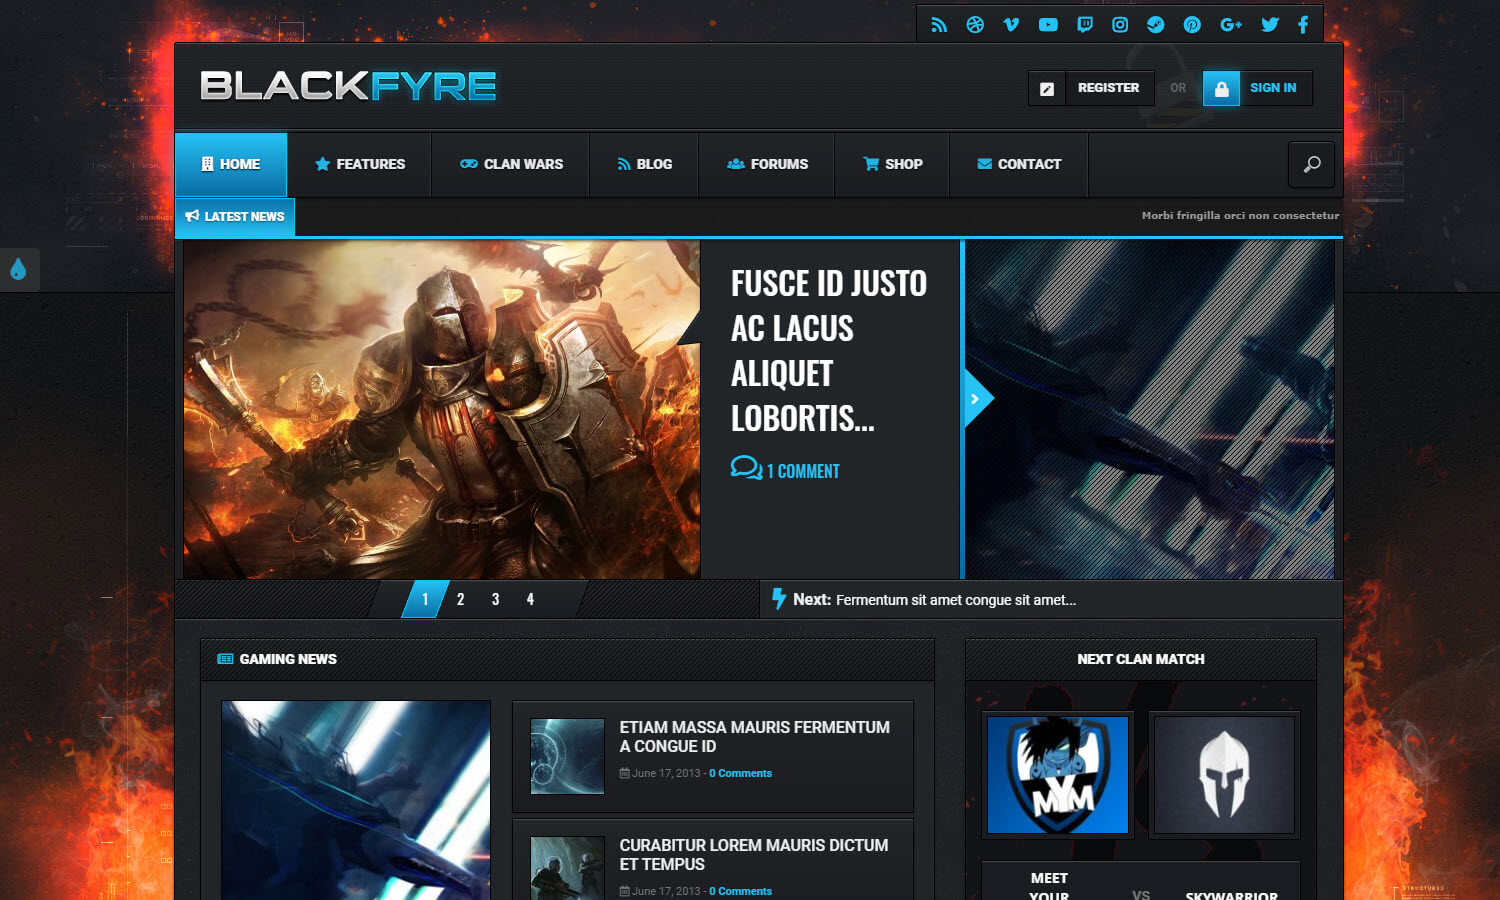 Blackfyre screenshot